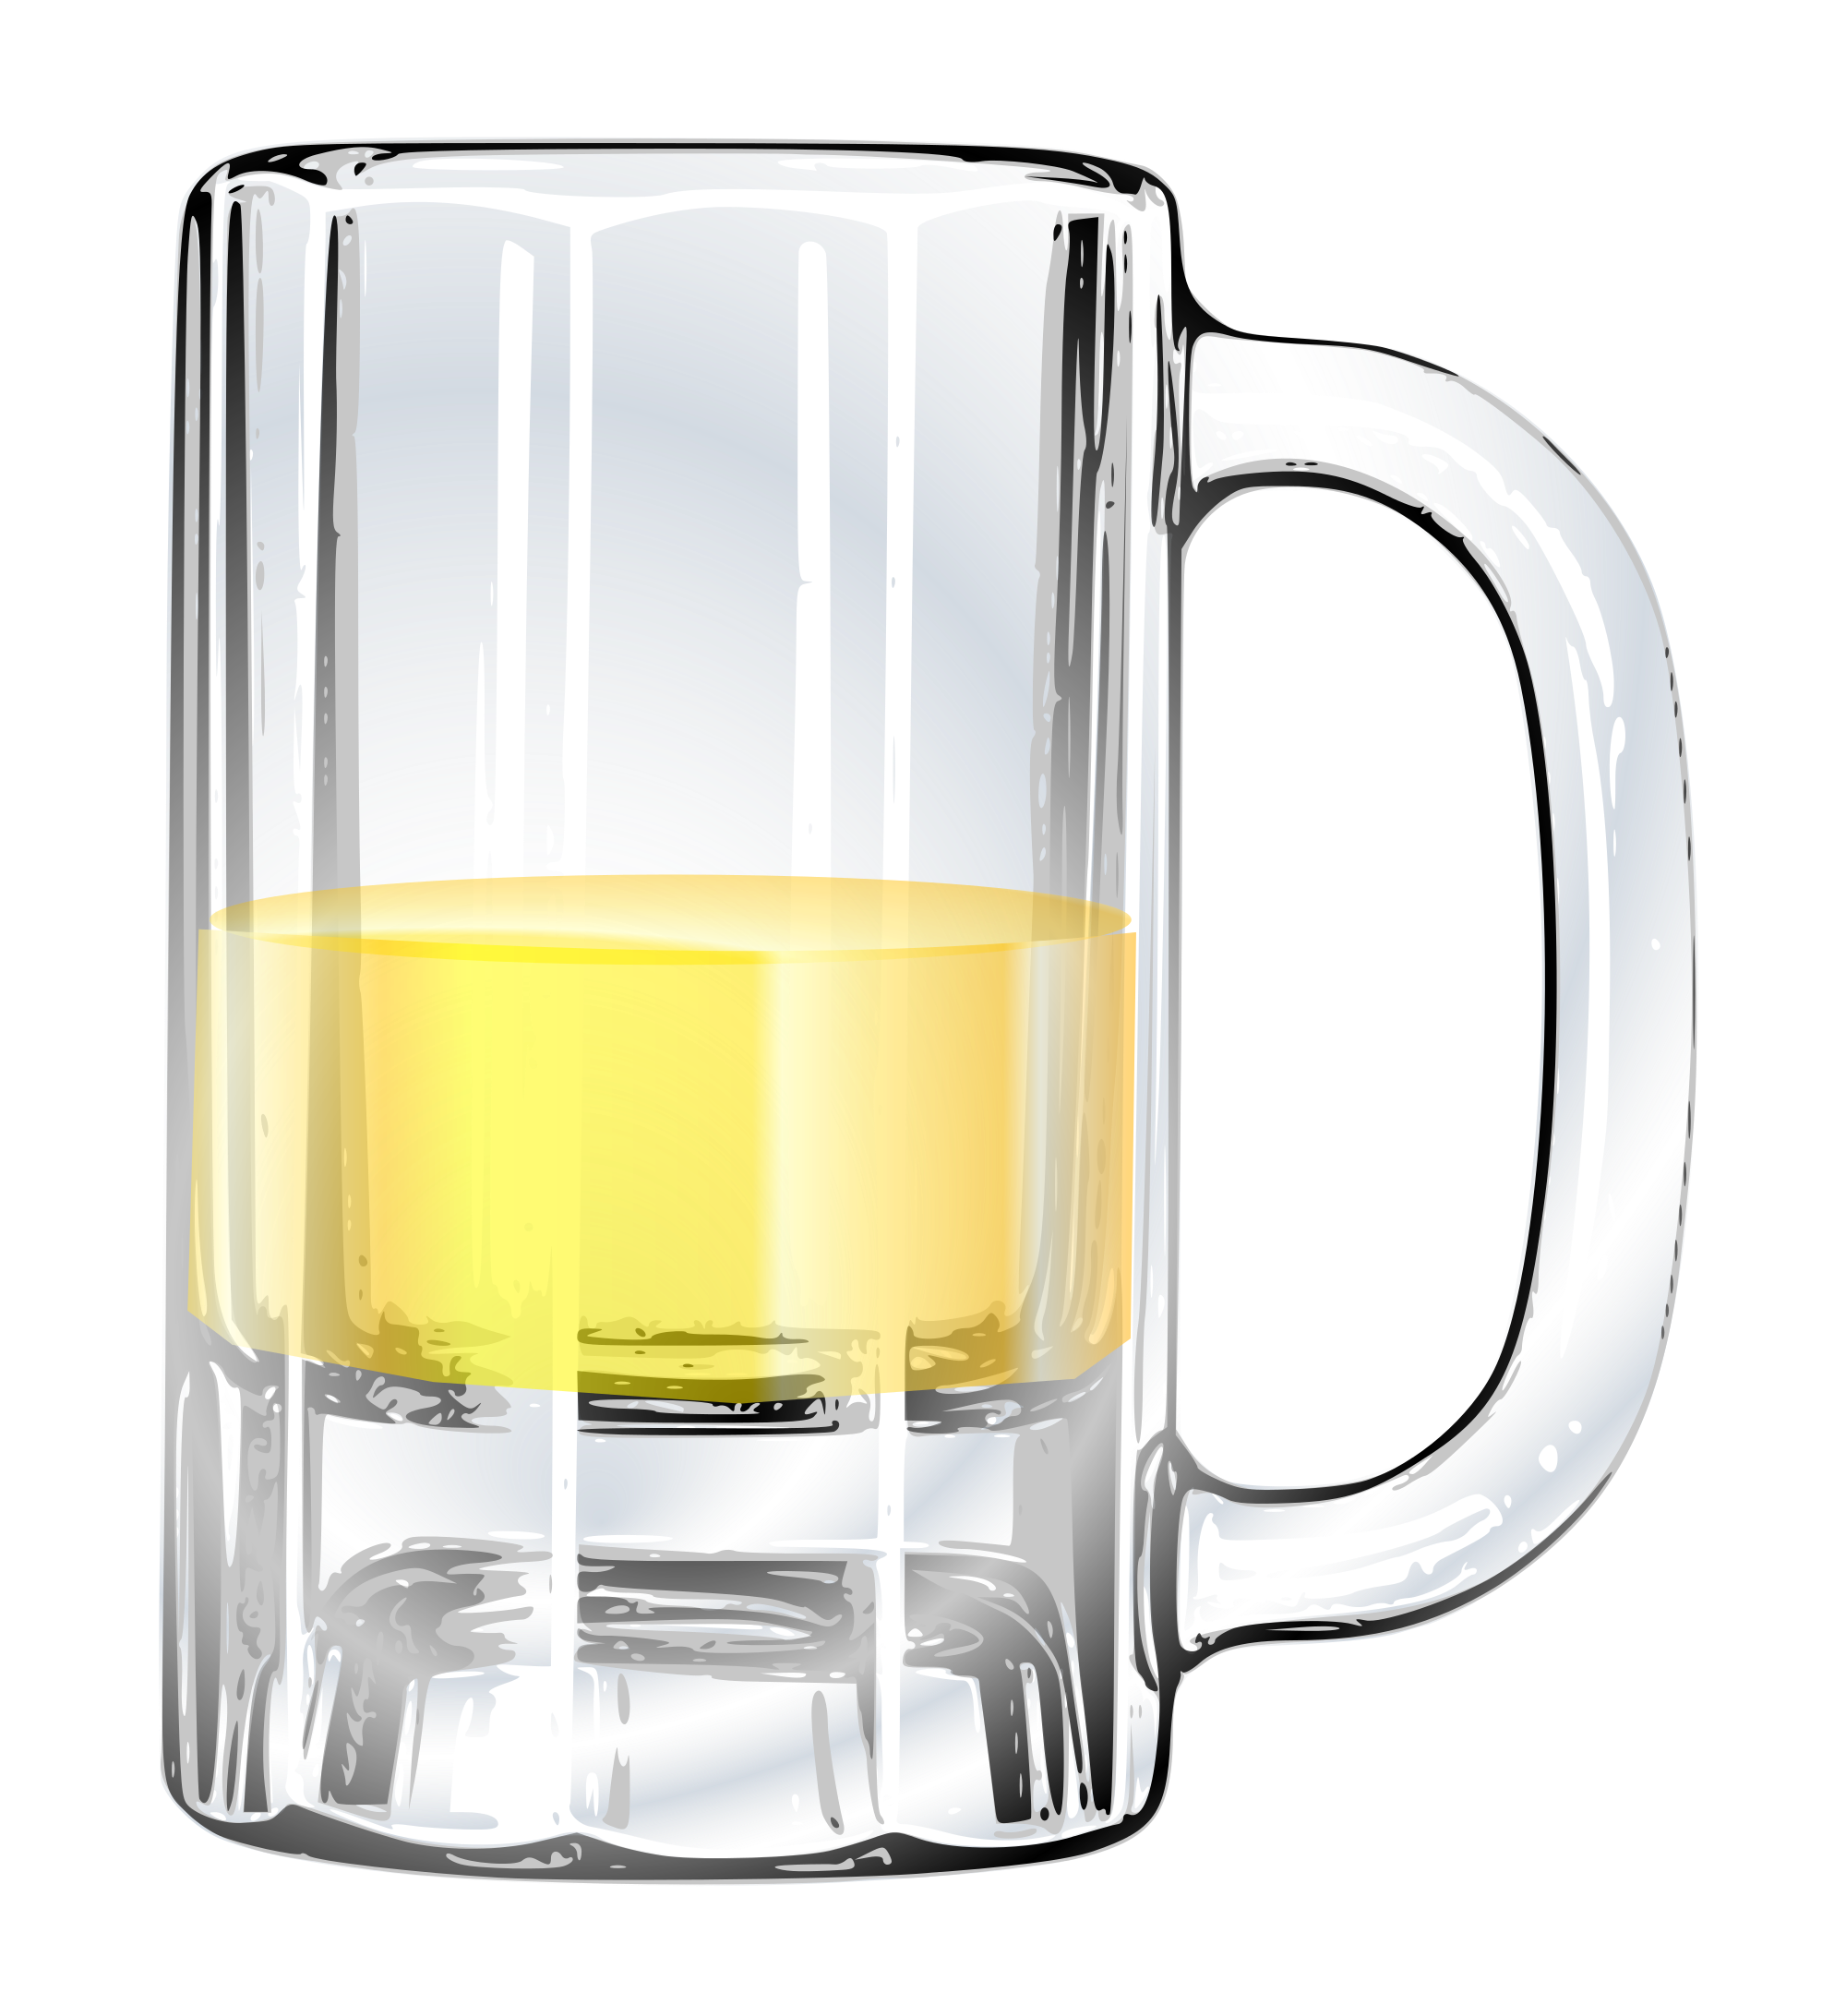 Free download high resolution image - free image free photo free stock image public domain picture -mug of beer